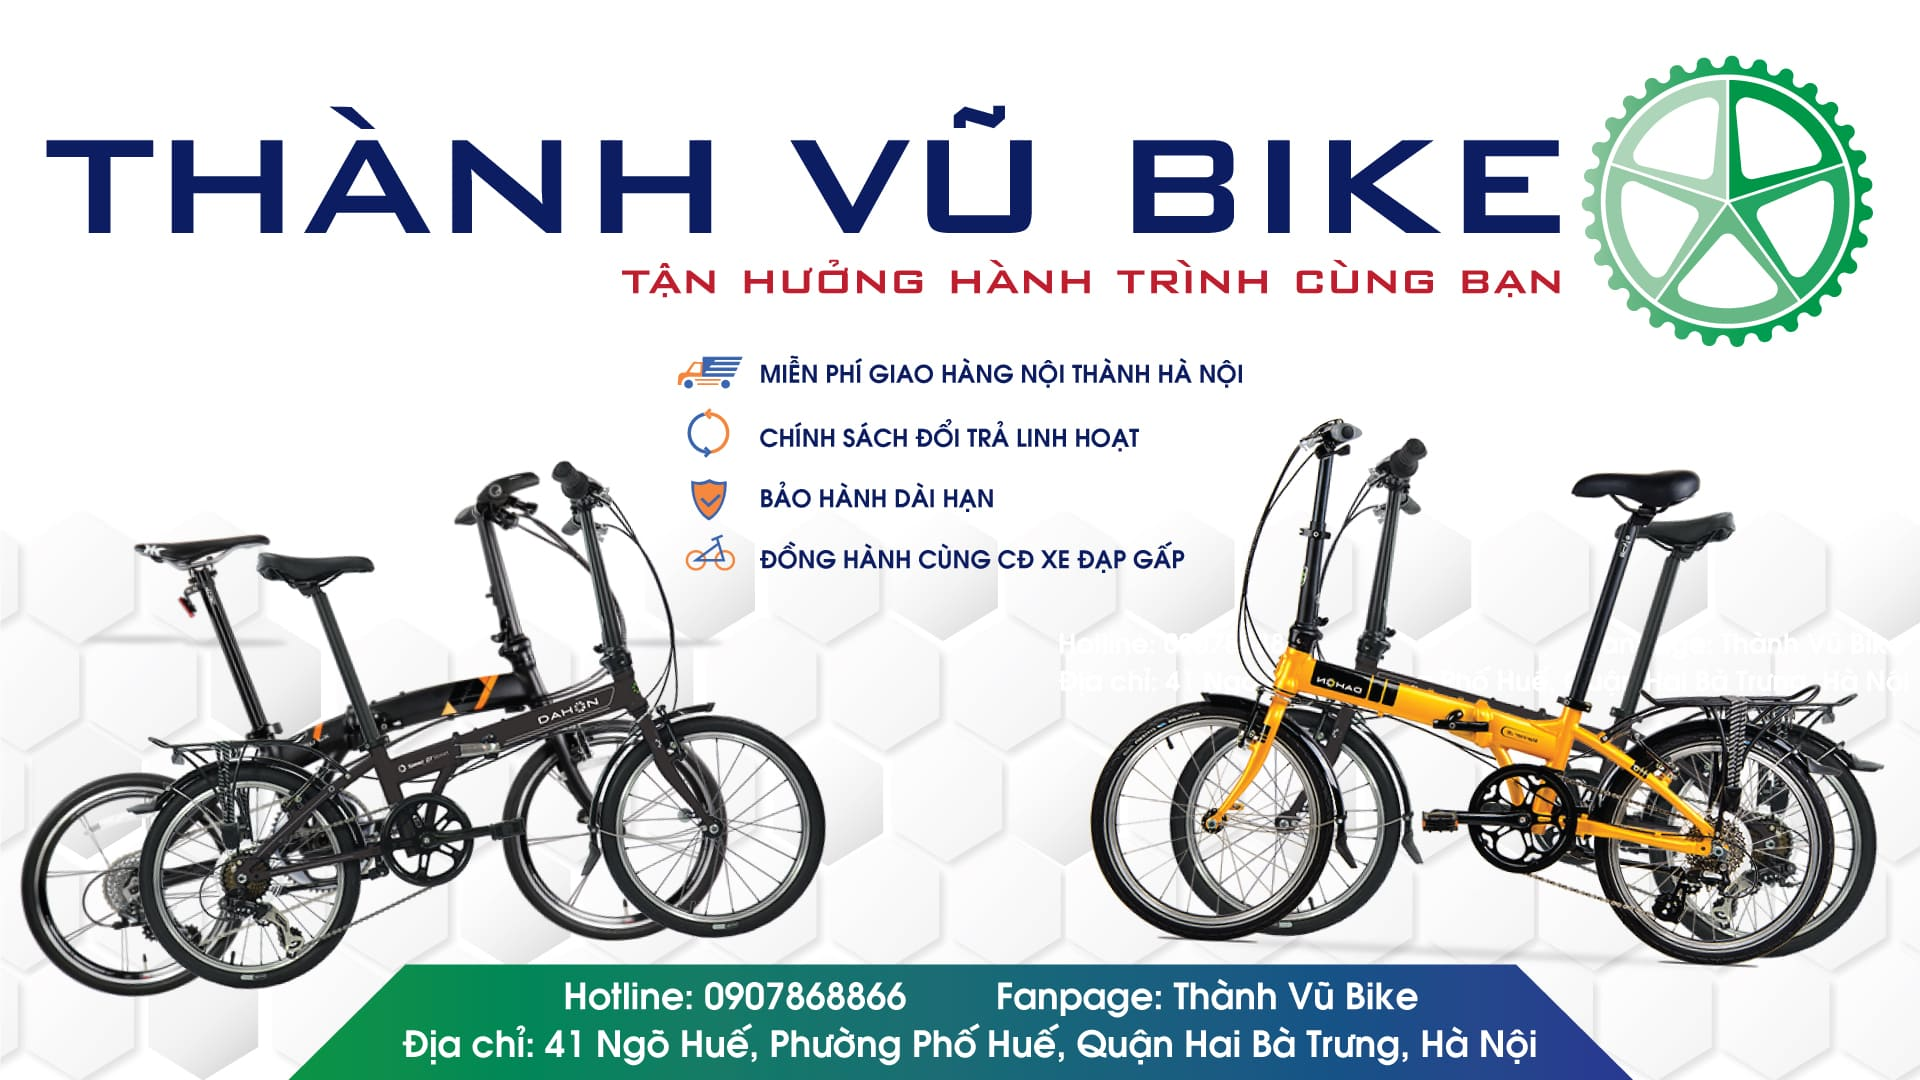 thanhvubike-banner-03